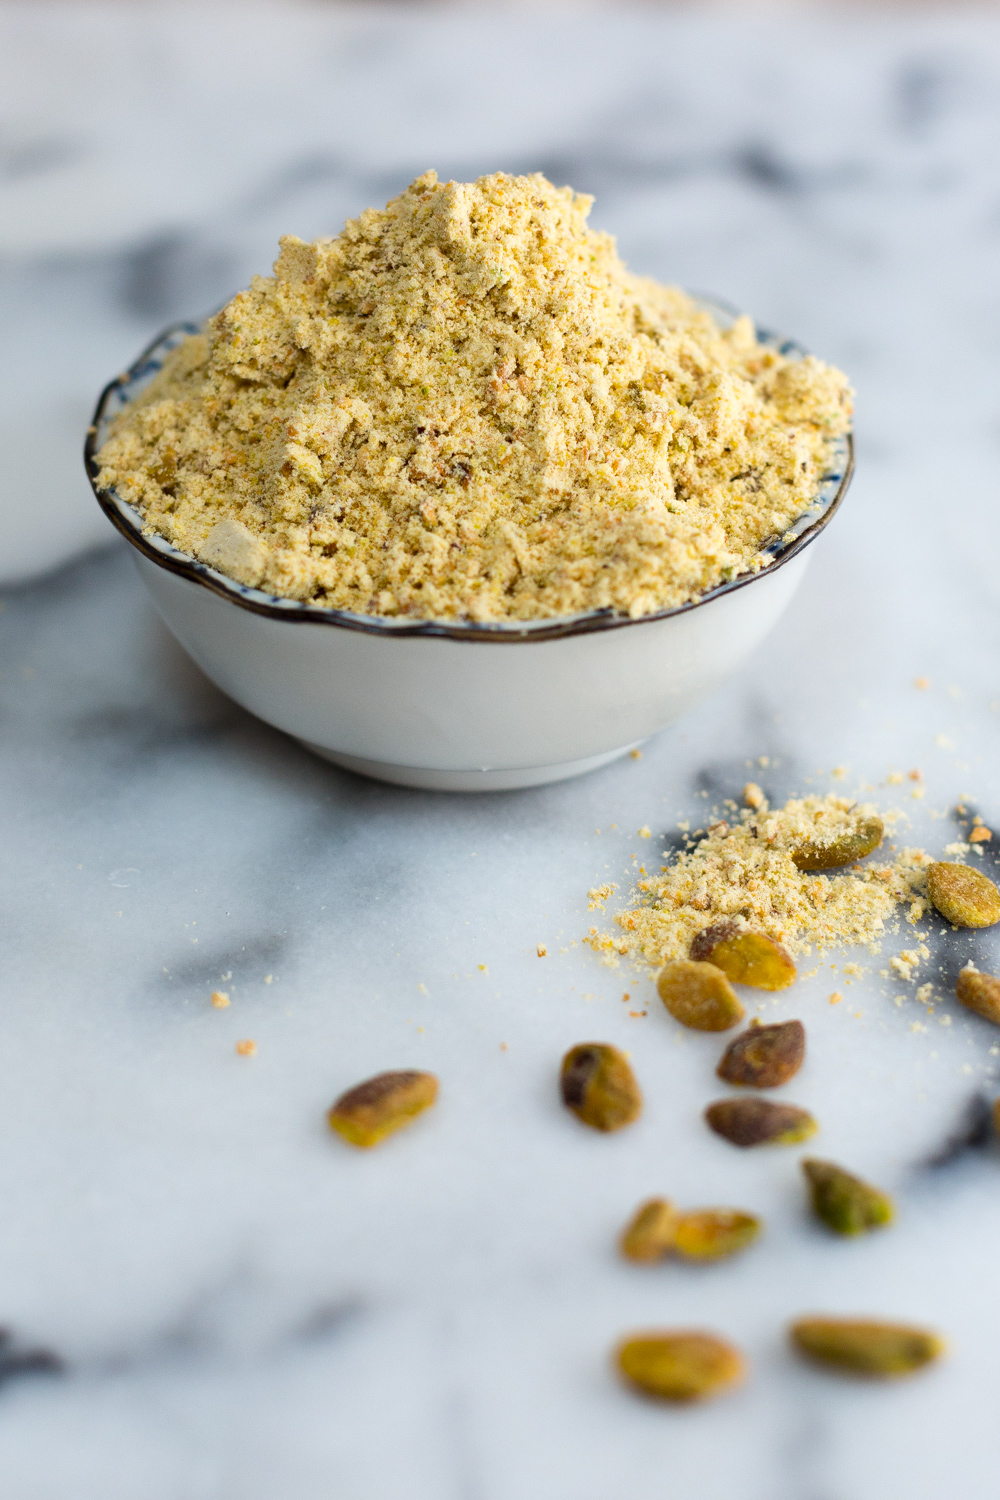 ground pistachios for Ricotta & Amarena Cherry Tart with Pistachio Crust